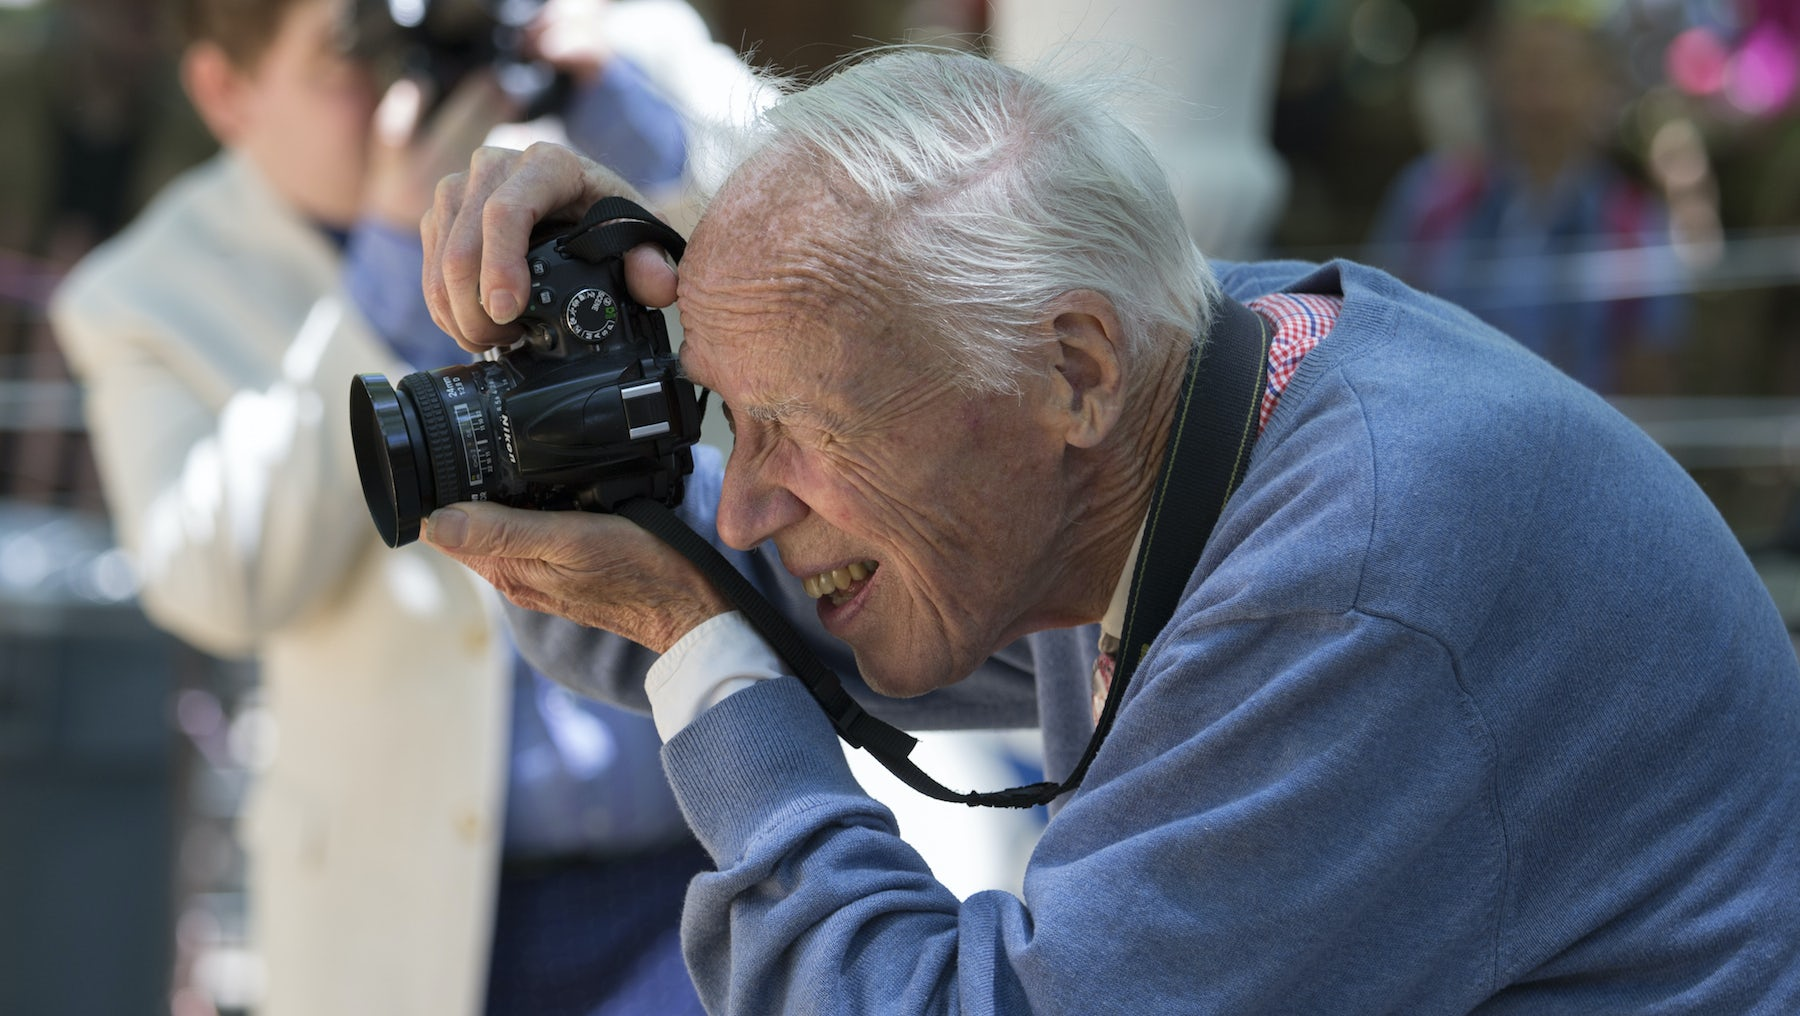 Bill Cunningham | Source: Shutterstock